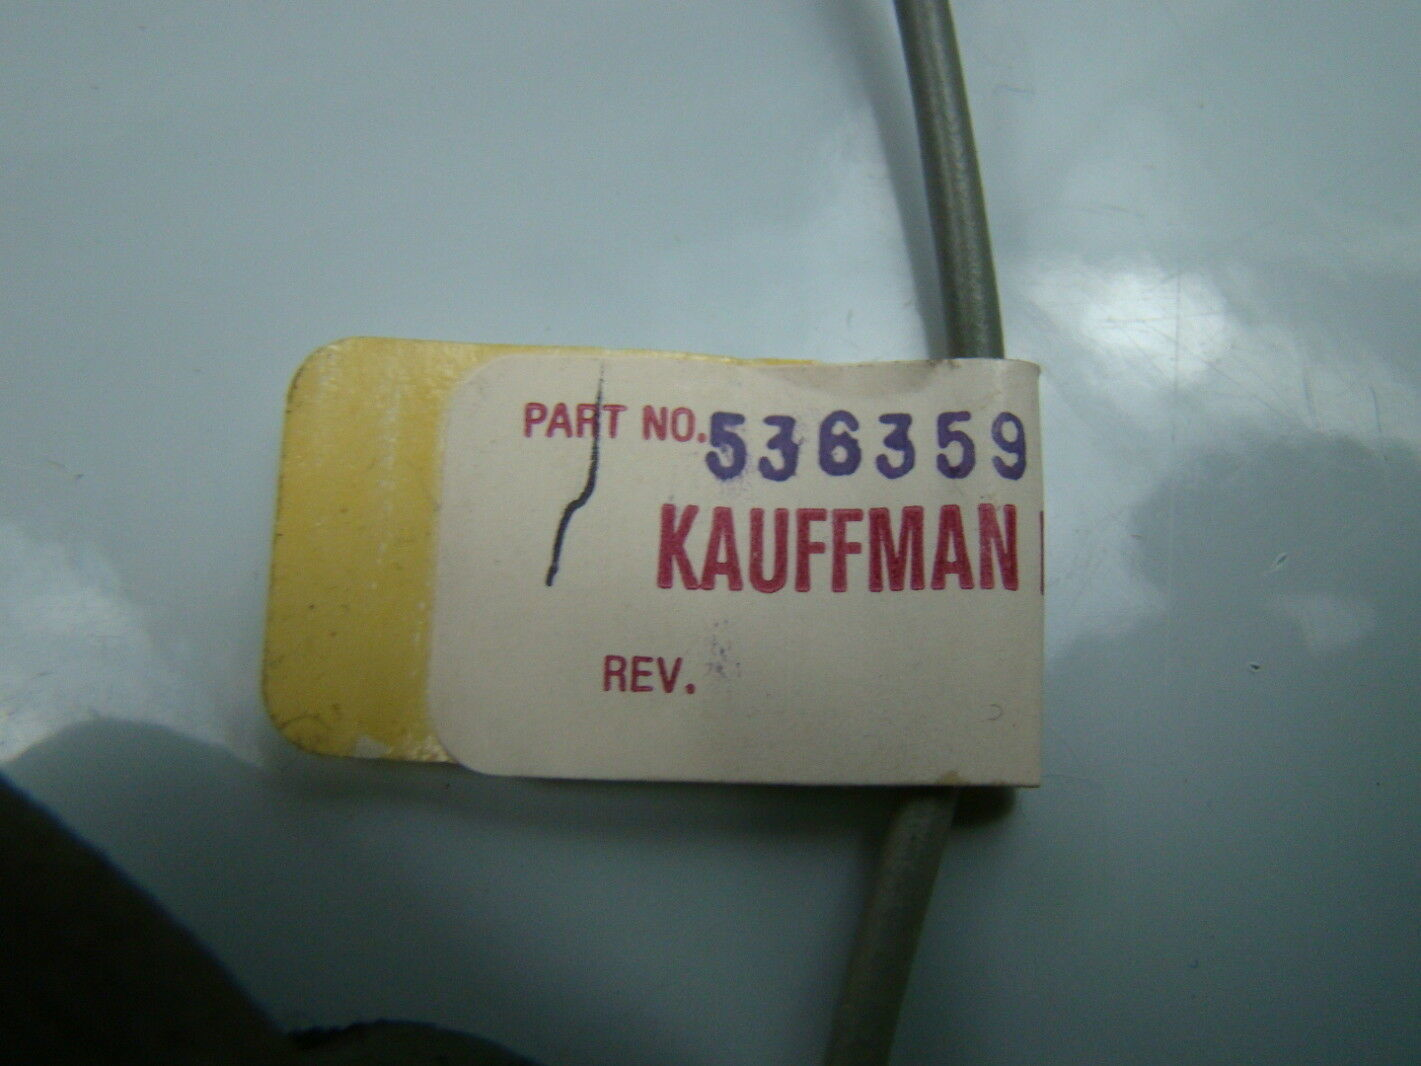 jf07862 kauffman engineering wiring harness 536359 5 kauffman engineering wiring harness 536359 ebay kauffman wire harness at soozxer.org